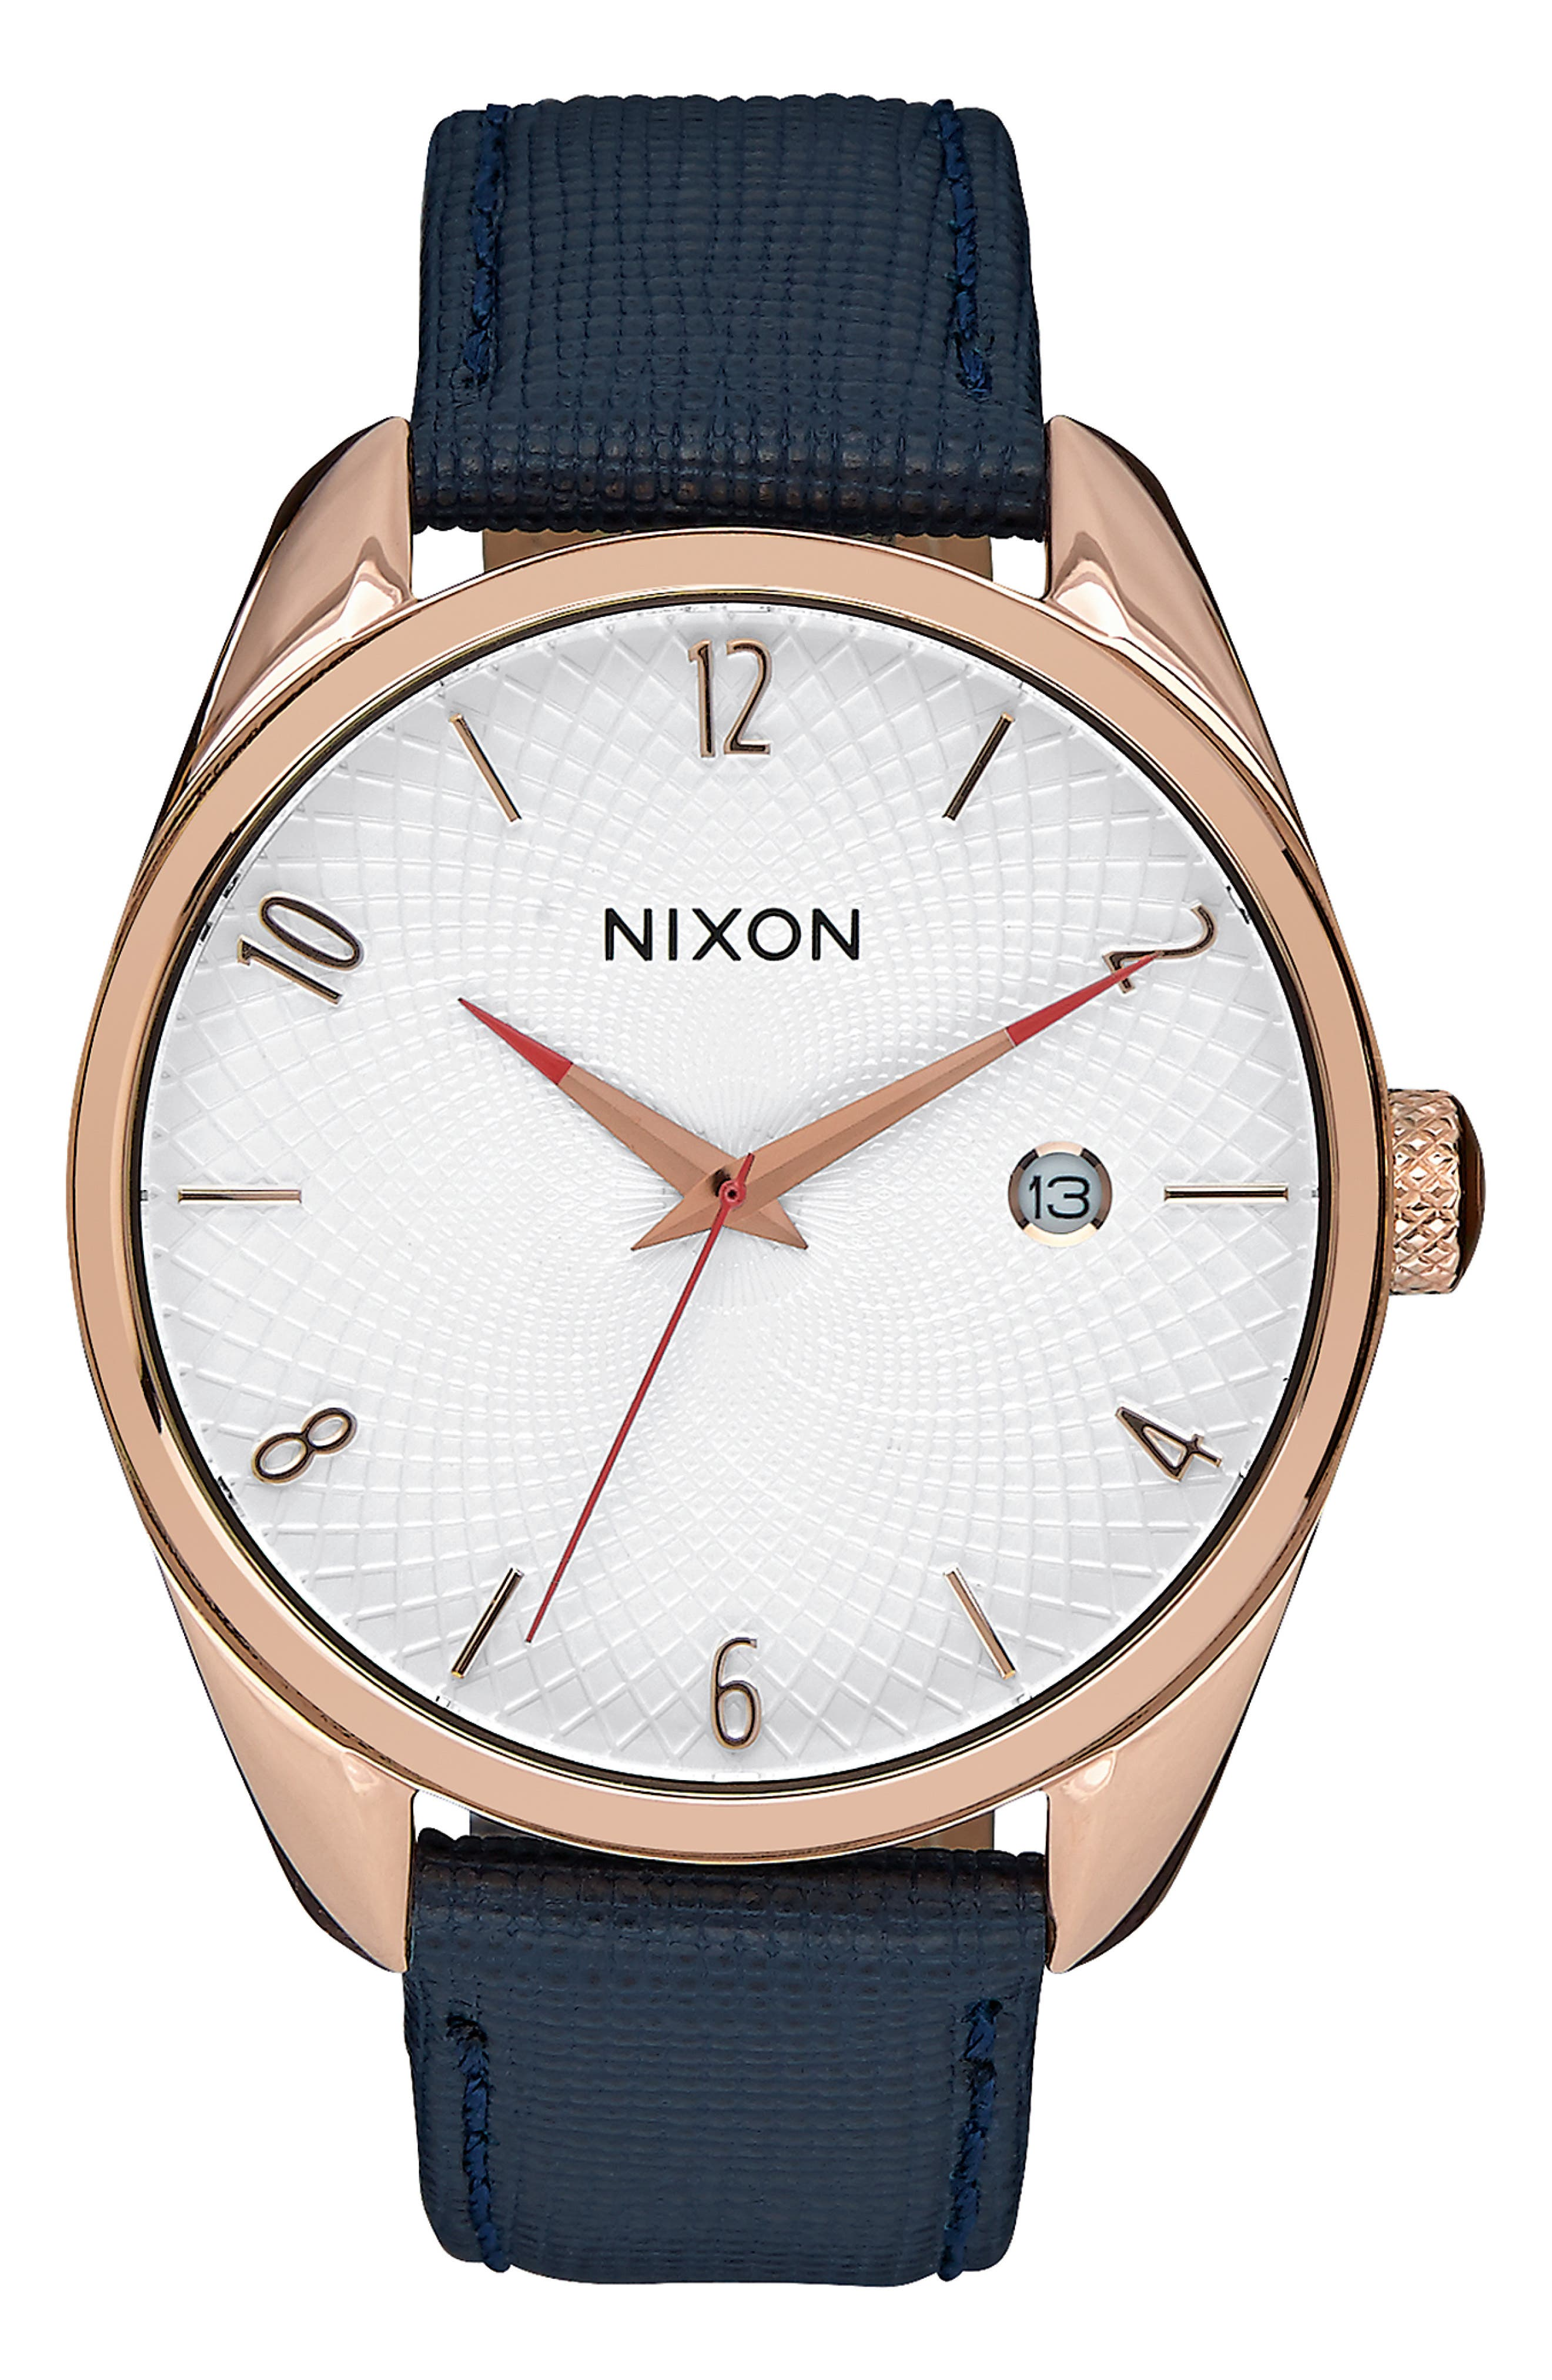 'Bullet' Guilloche Dial Oval Leather Strap Watch, 38mm,                             Main thumbnail 1, color,                             NAVY/ ROSE GOLD